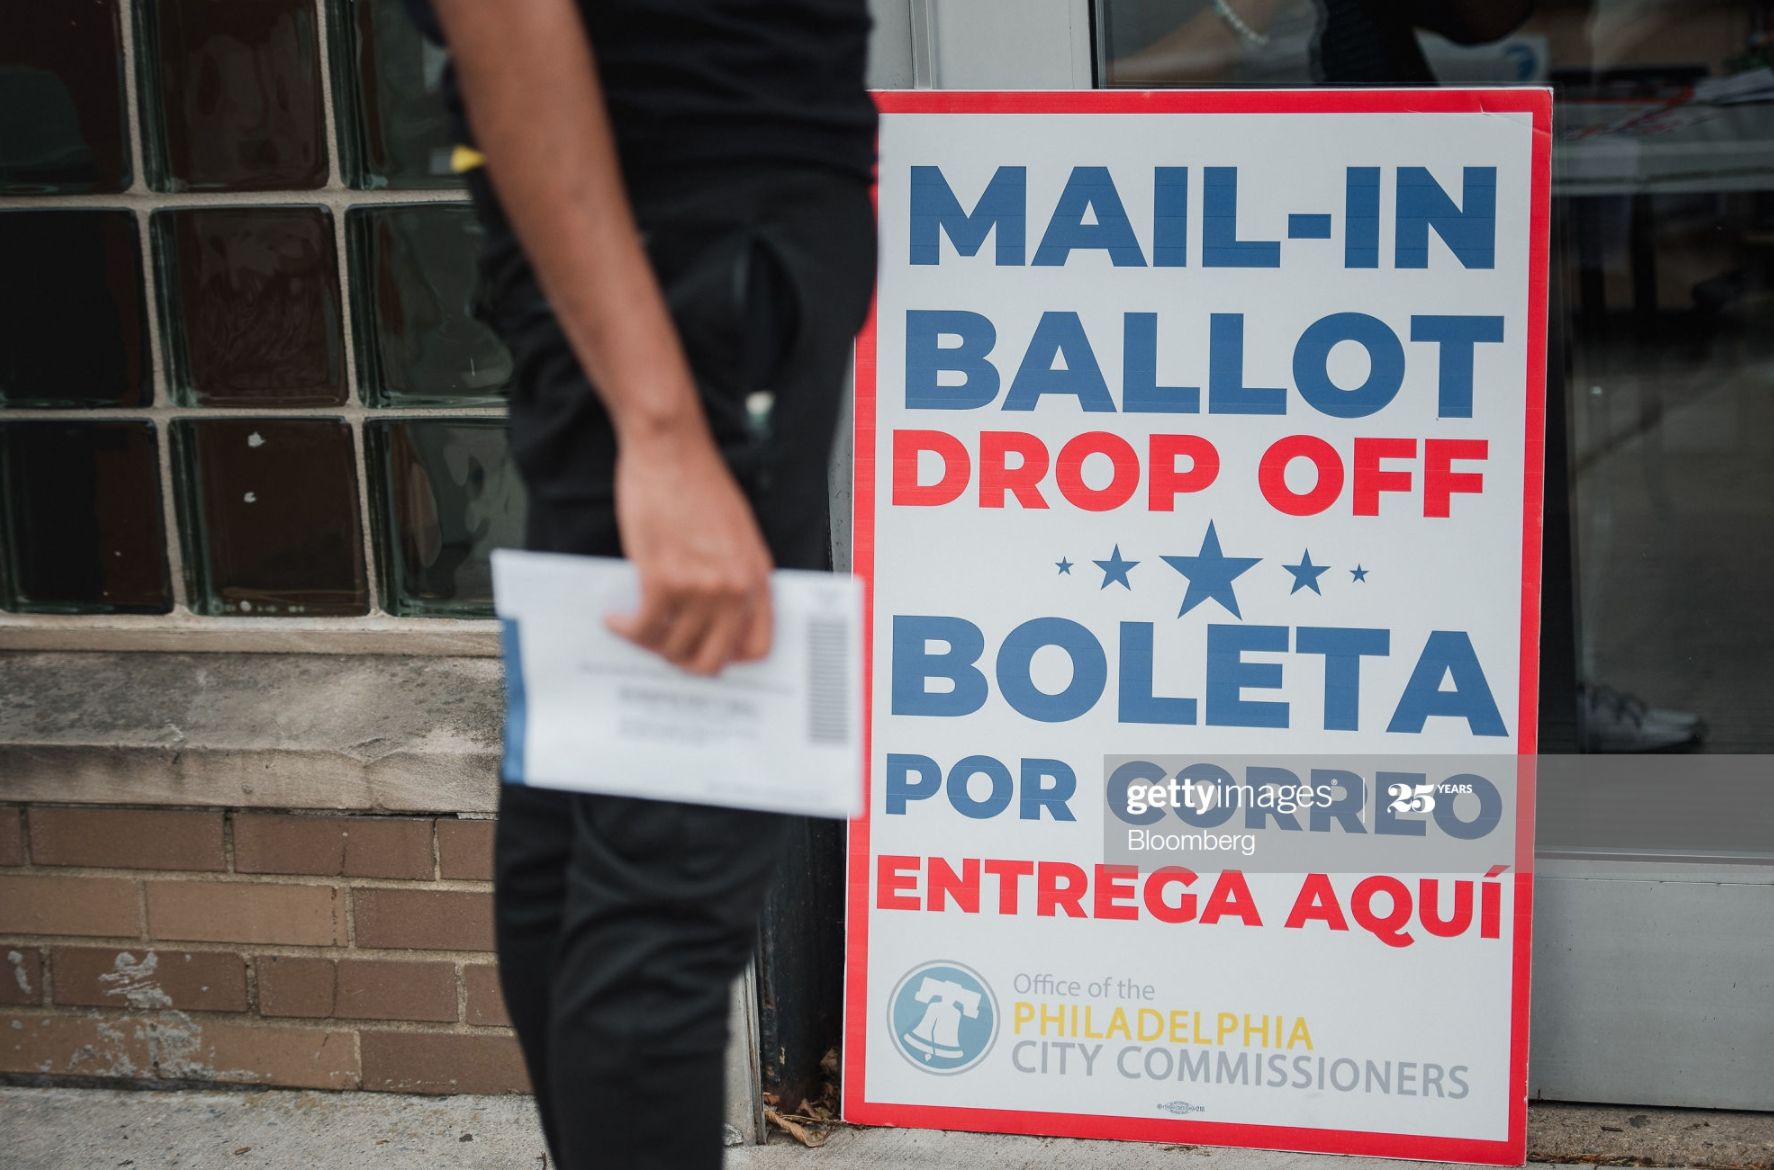 A voter waits to drop off his mail-in ballot at West Oak Lane Library in Philadelphia, Pennsylvania, U.S., on Tuesday, June 2, 2020. Amid the coronavirus pandemic, election officials encouraged voters in states including Indiana, Maryland, Montana, New Mexico, Iowa and South Dakota to cast ballots by mail or return them to voting centers or drop boxes before primary day.